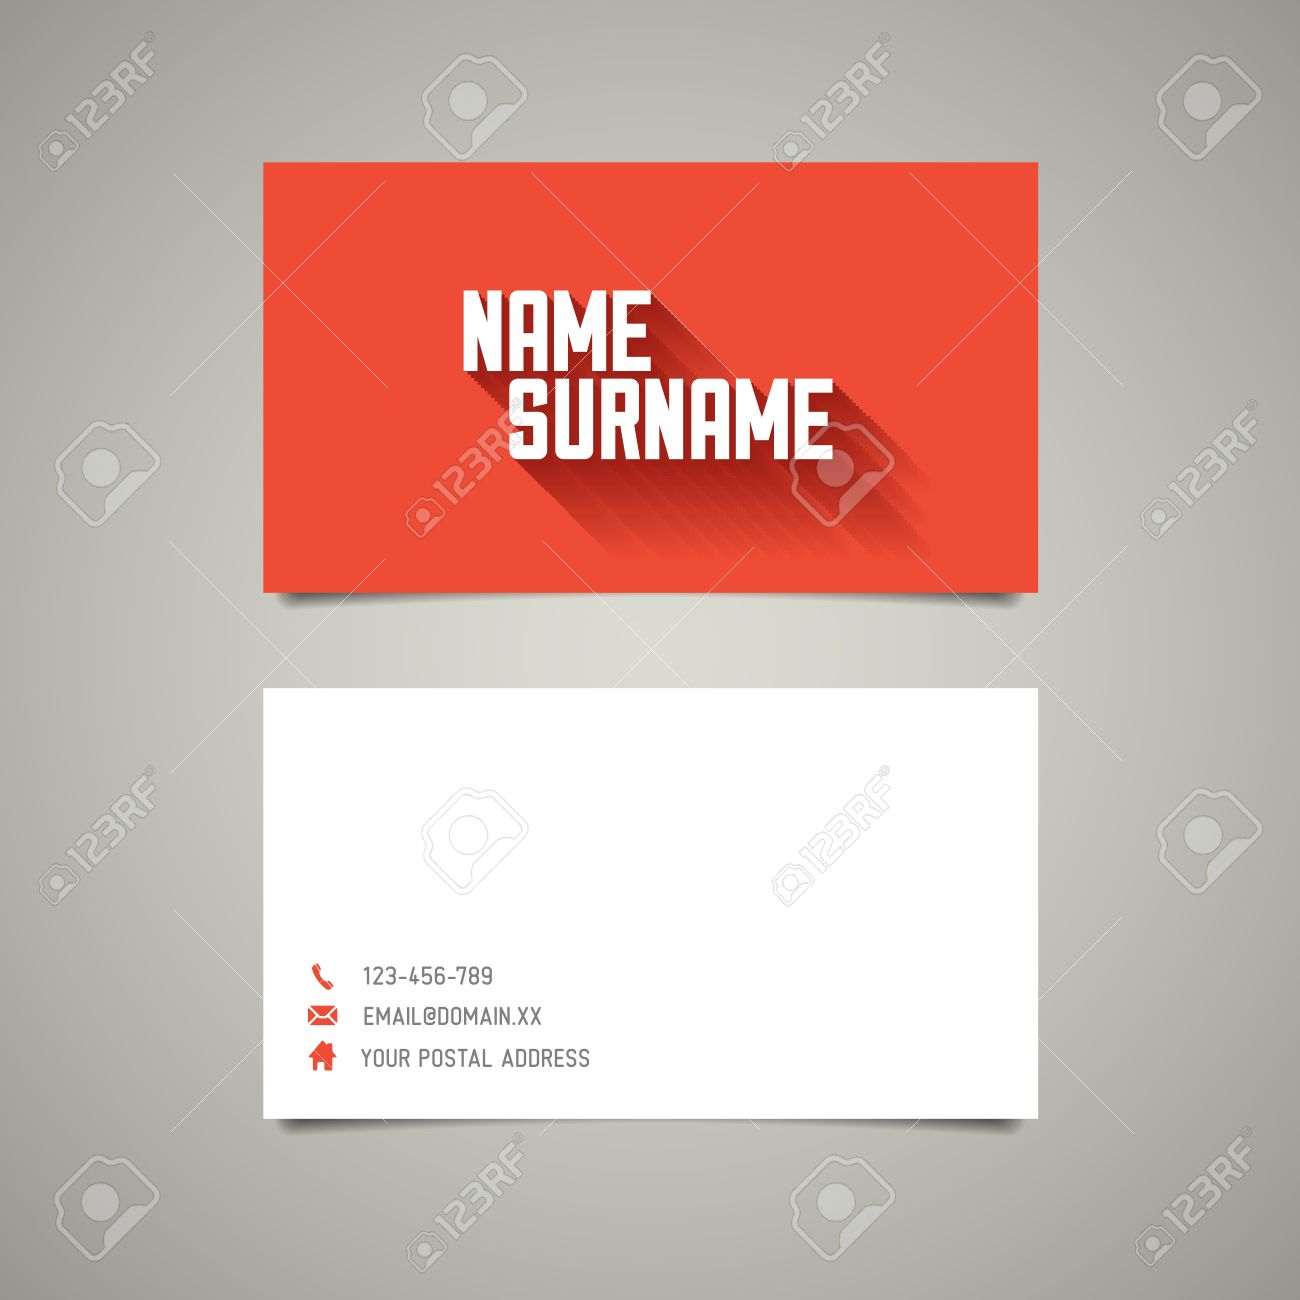 modern simple business card template with big name surname and